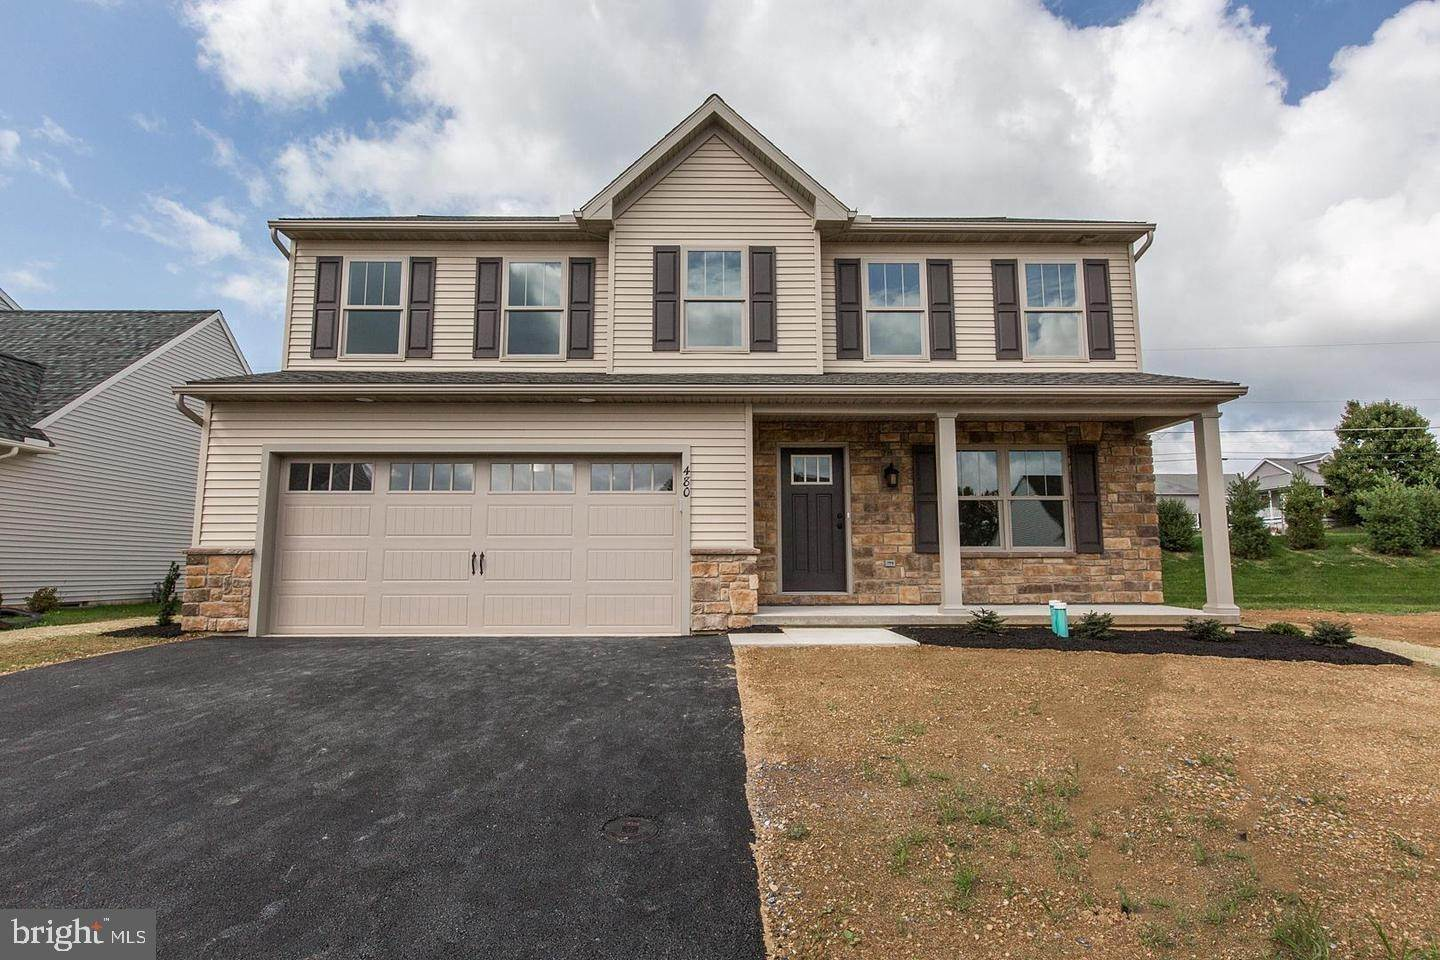 2. Residential for Sale at 1300 TEXTER MOUNTAIN Road Reinholds, Pennsylvania 17569 United States